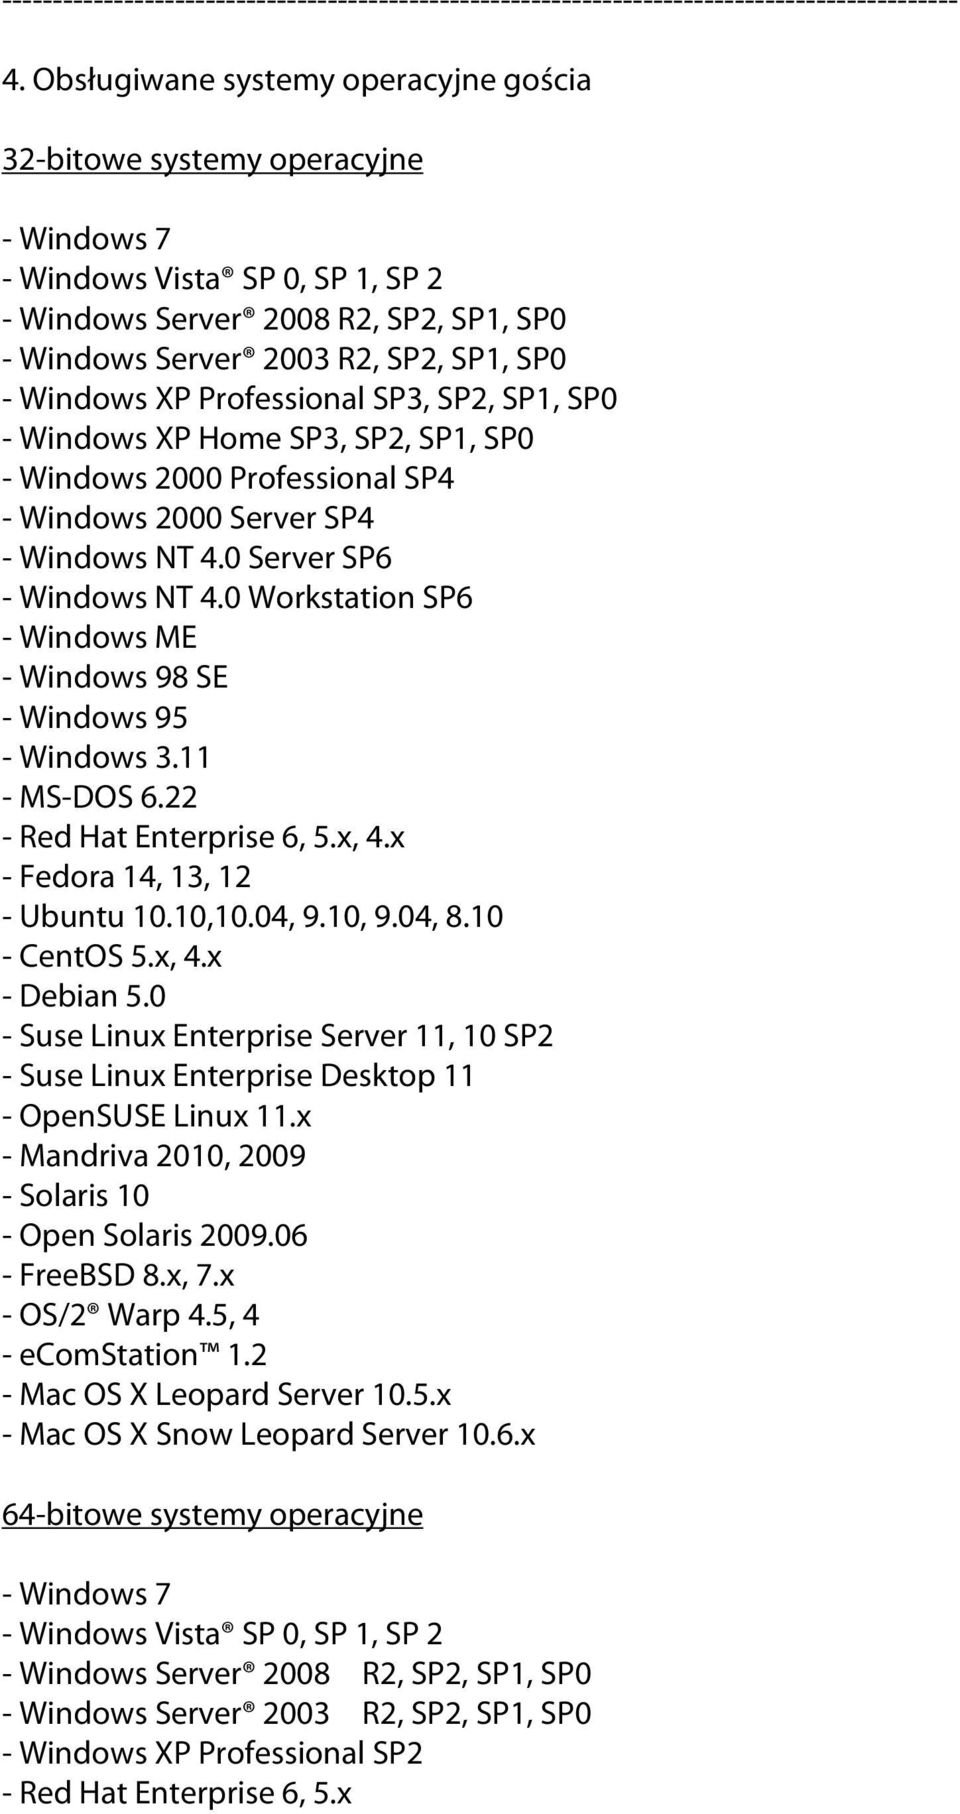 Windows XP Professional SP3, SP2, SP1, SP0 - Windows XP Home SP3, SP2, SP1, SP0 - Windows 2000 Professional SP4 - Windows 2000 Server SP4 - Windows NT 4.0 Server SP6 - Windows NT 4.